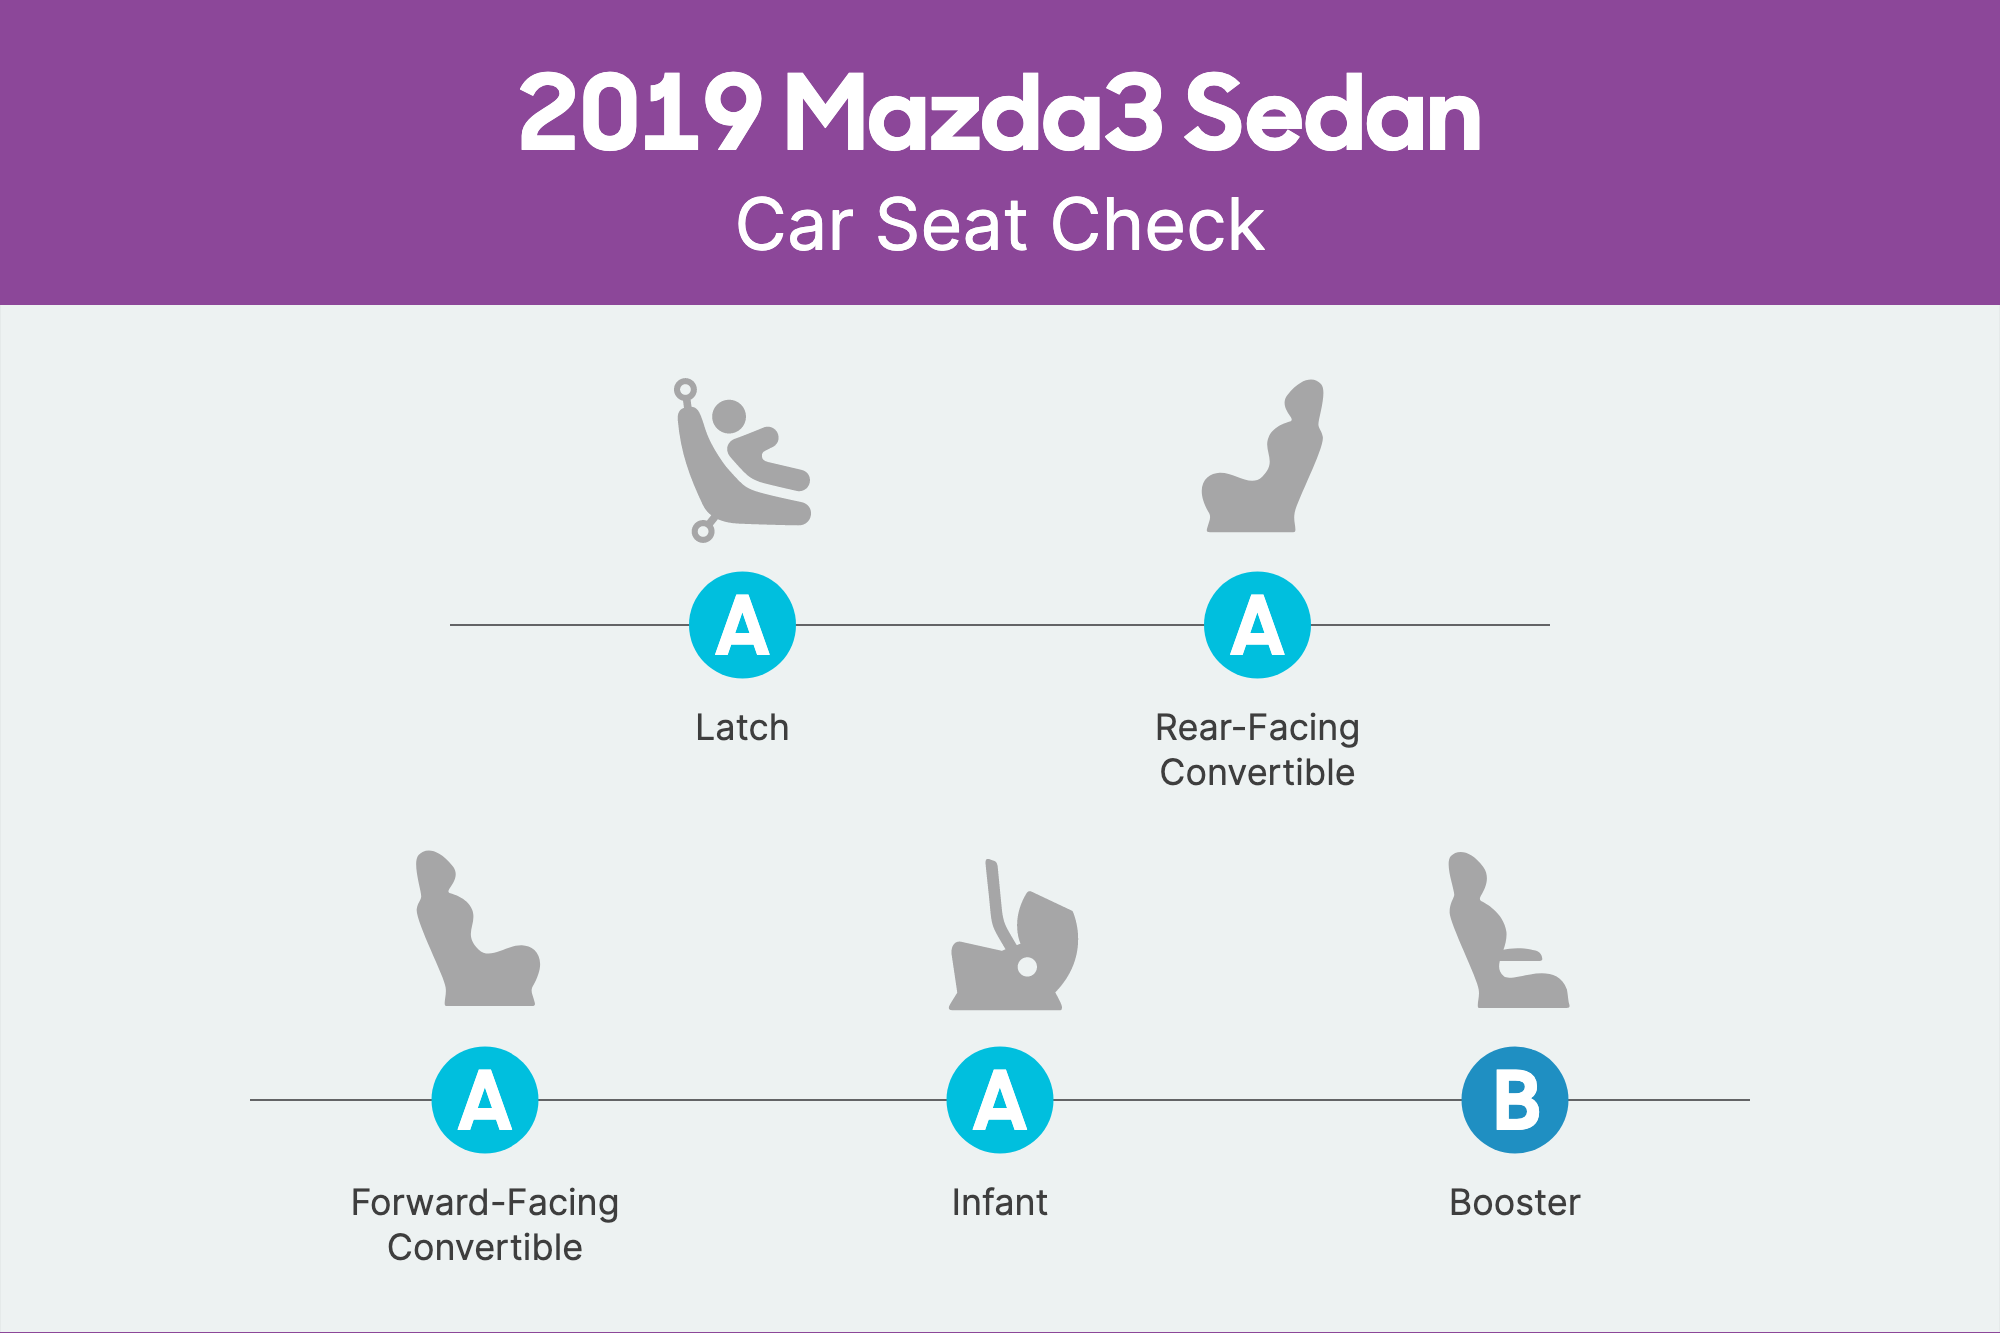 How Do Car Seats Fit in a 2019 Mazda3 Sedan?